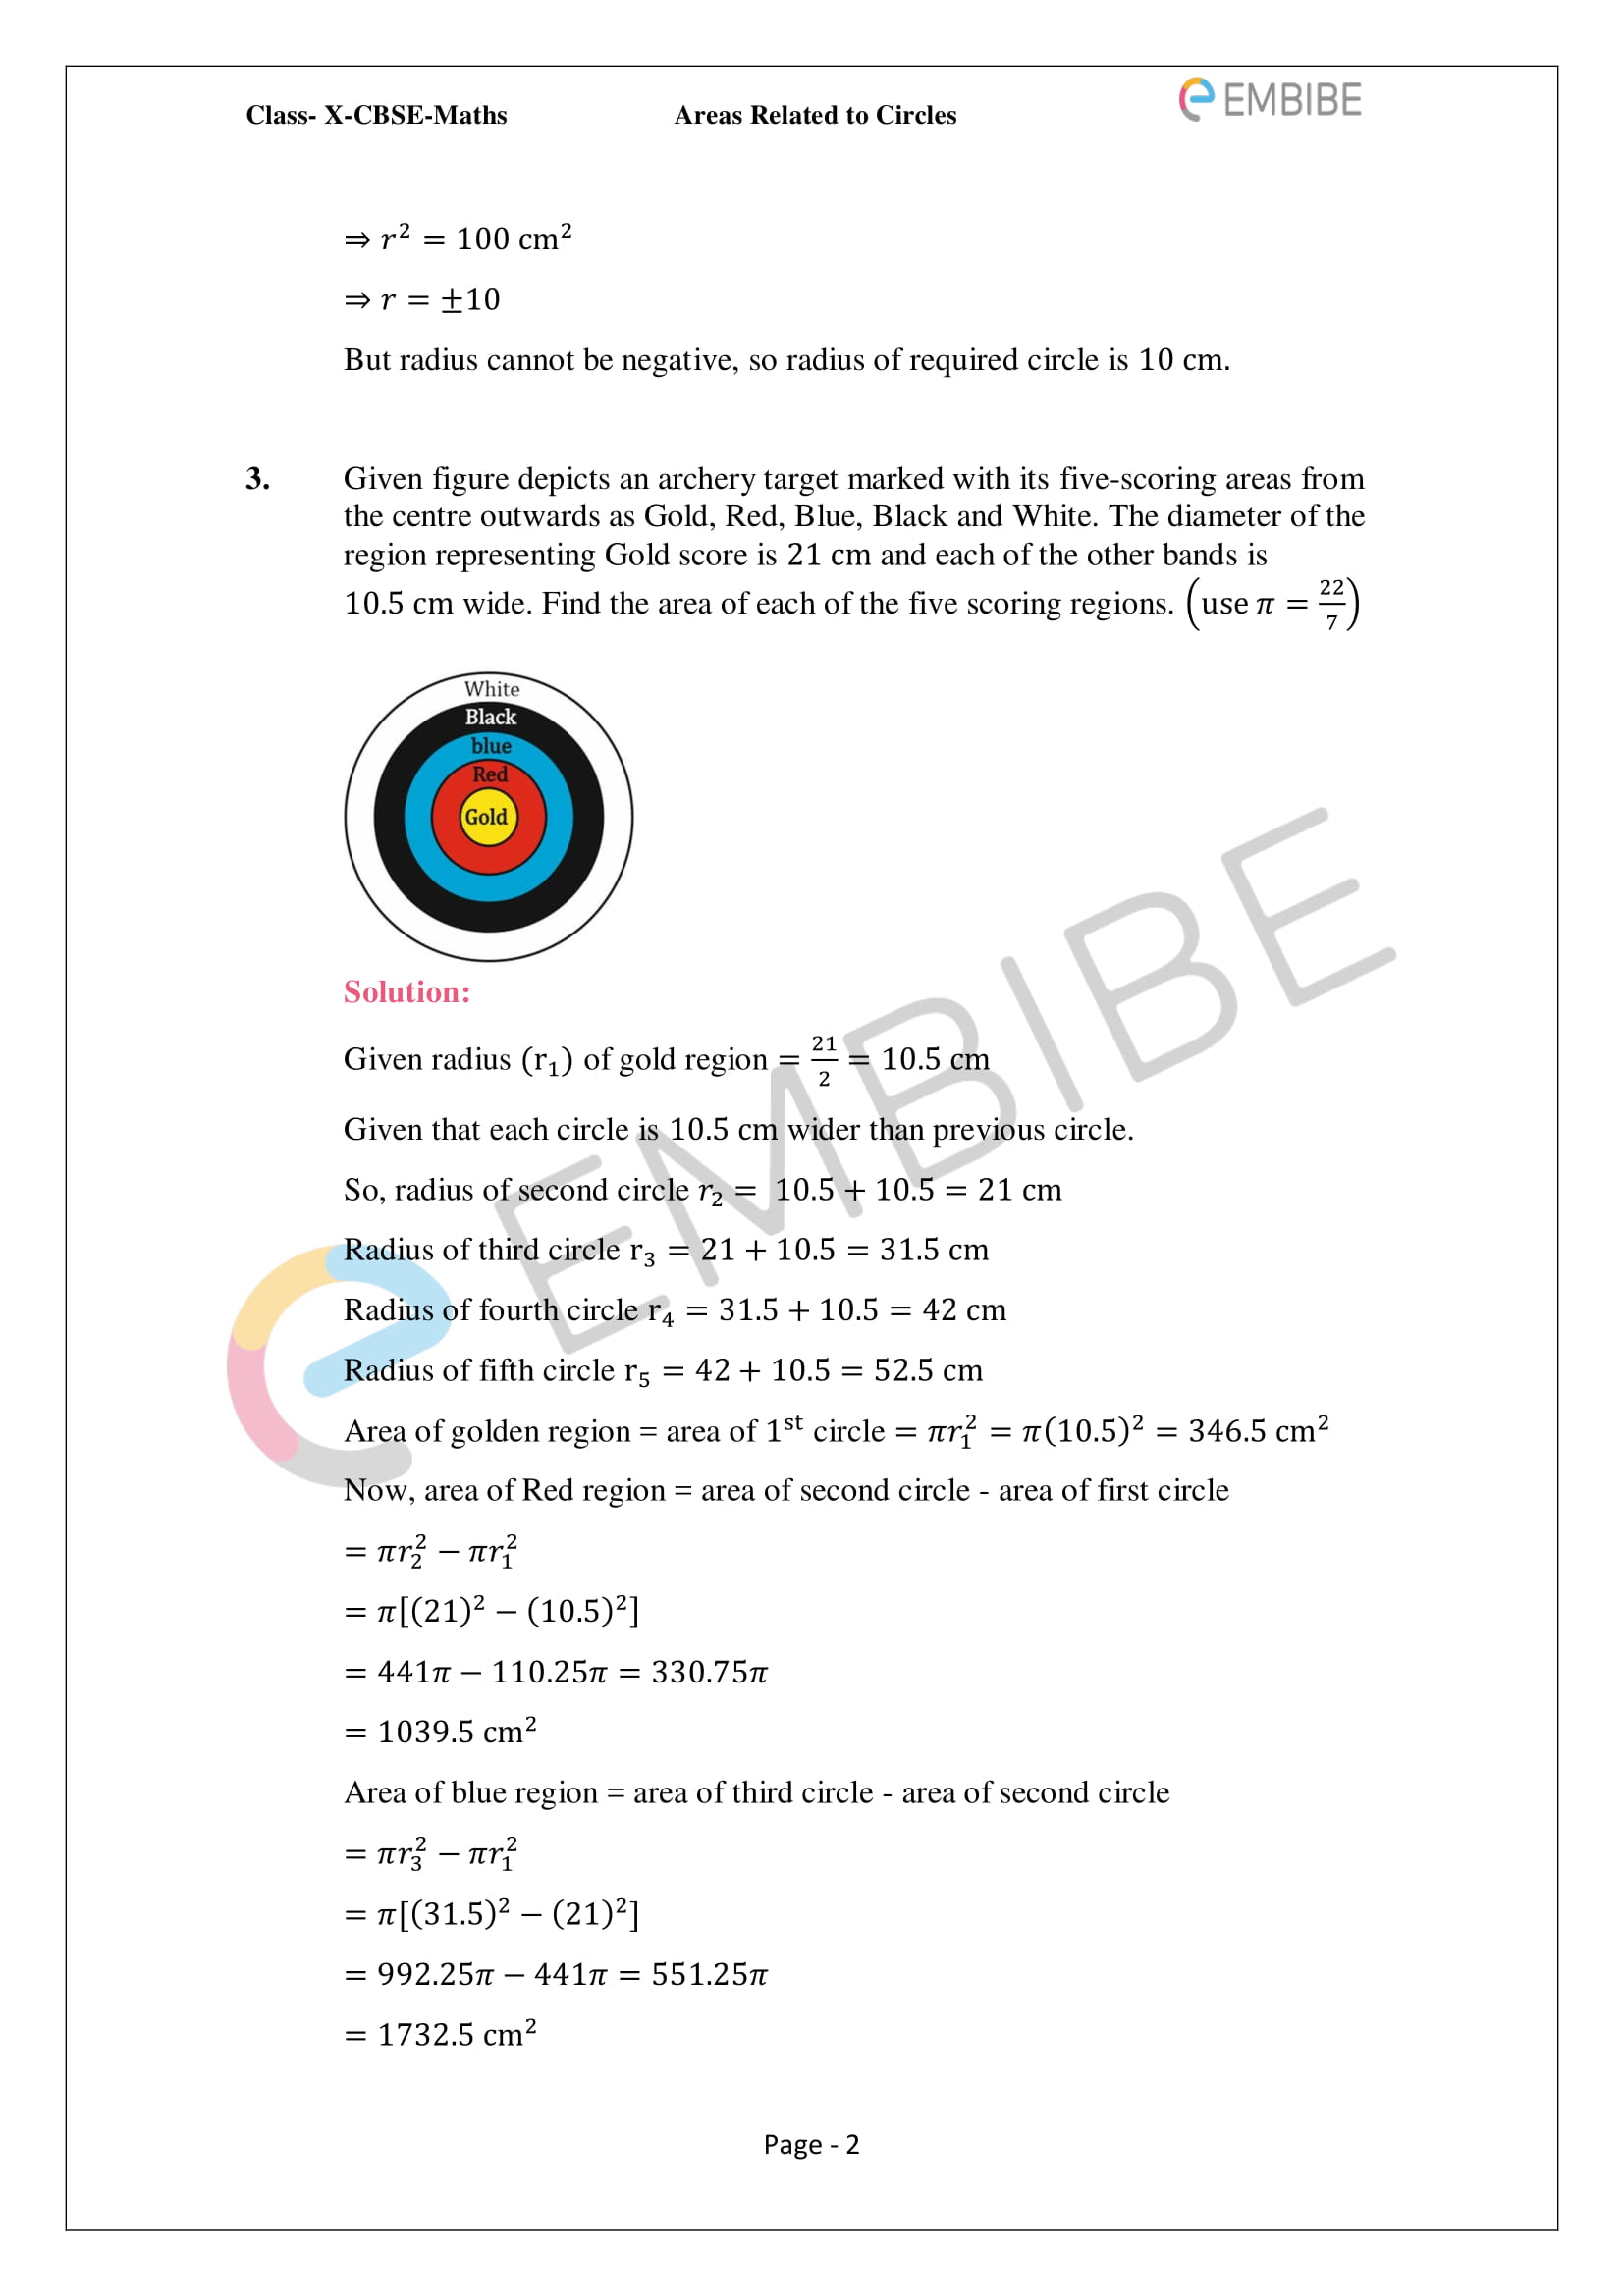 CBSE NCERT Solutions For Class 10 Maths Chapter 12 - Areas Related To Circle - 2